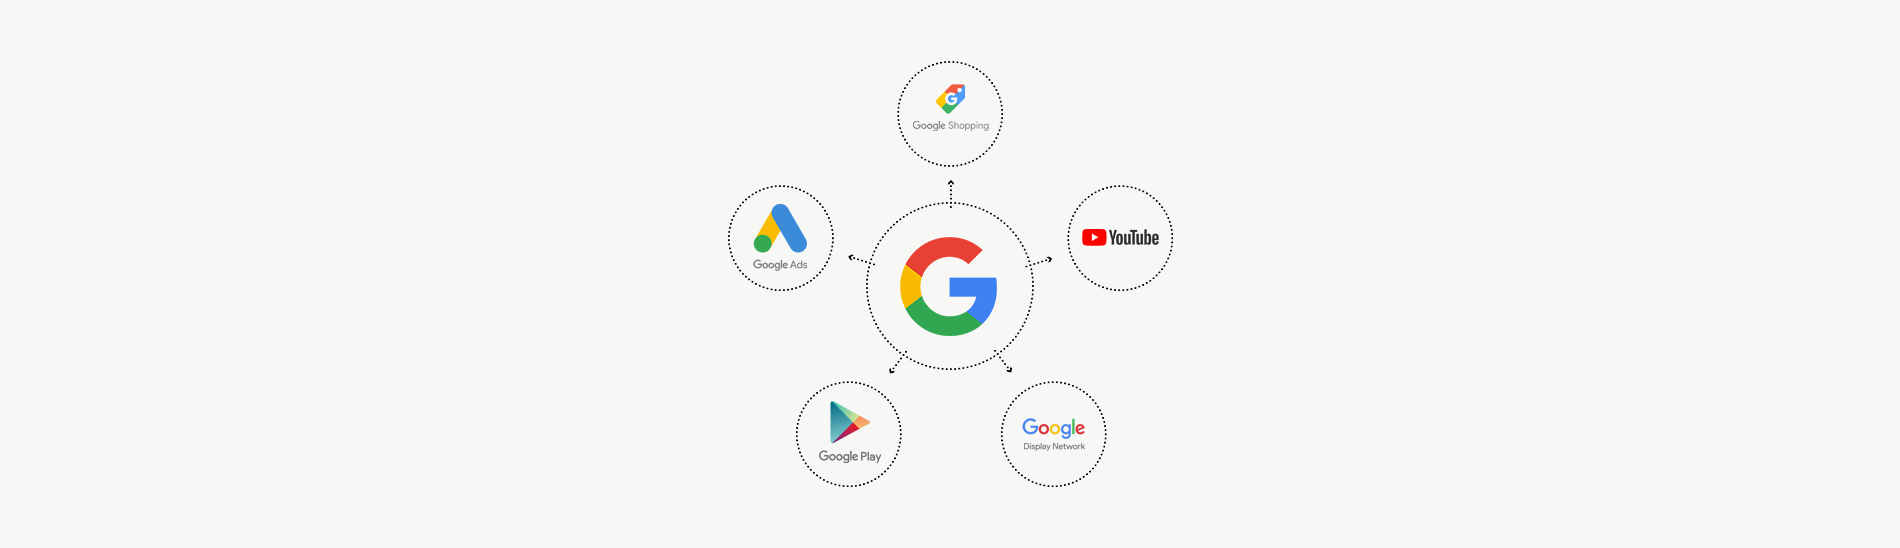 Not only Search. Google network explained.